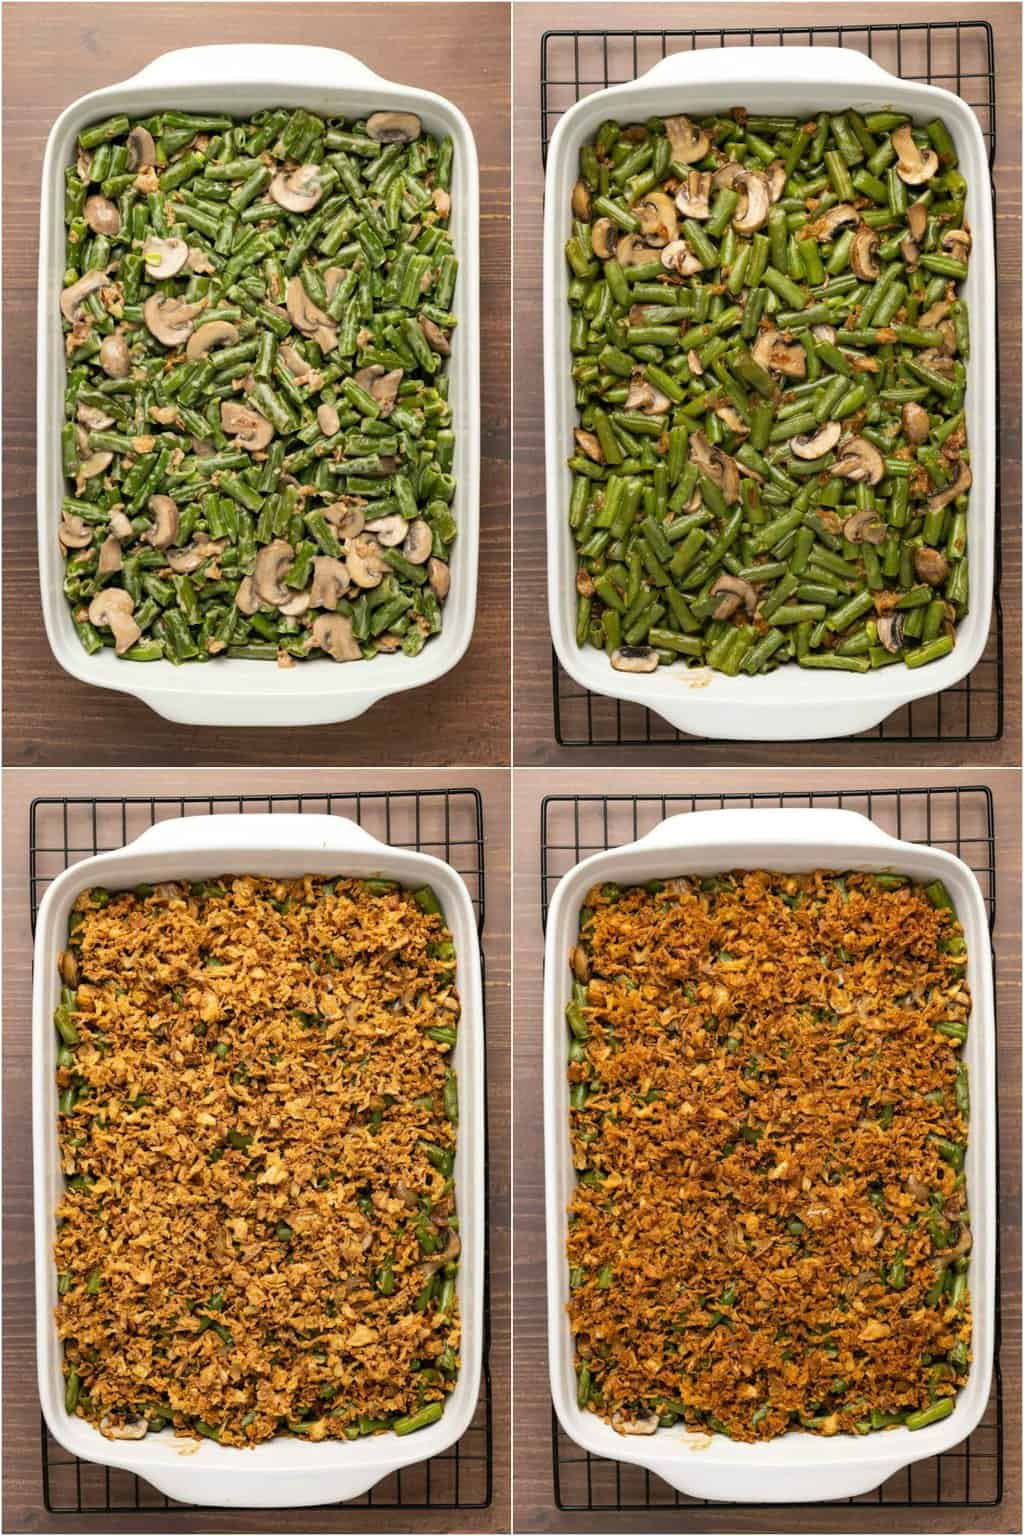 Step by step process photo collage of assembling a green bean casserole.